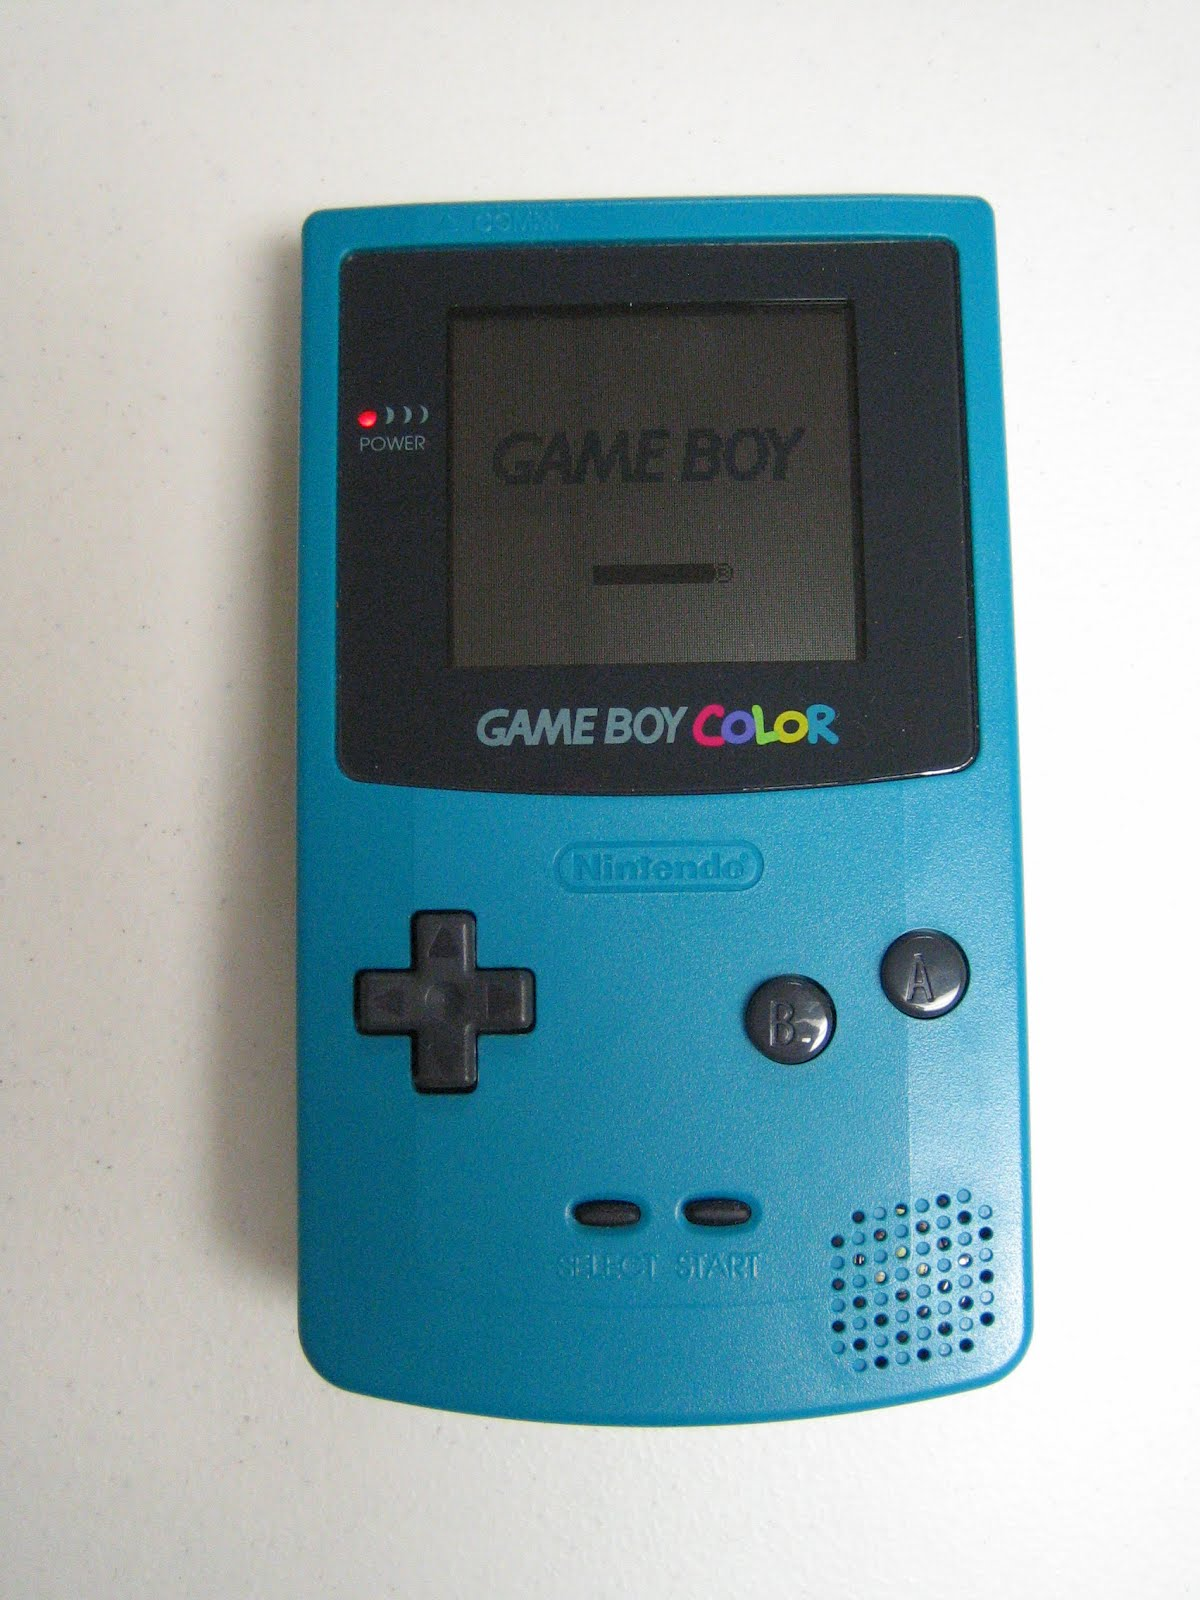 Hyrule Trading Company Game Boy Color Teal Gameboy Color